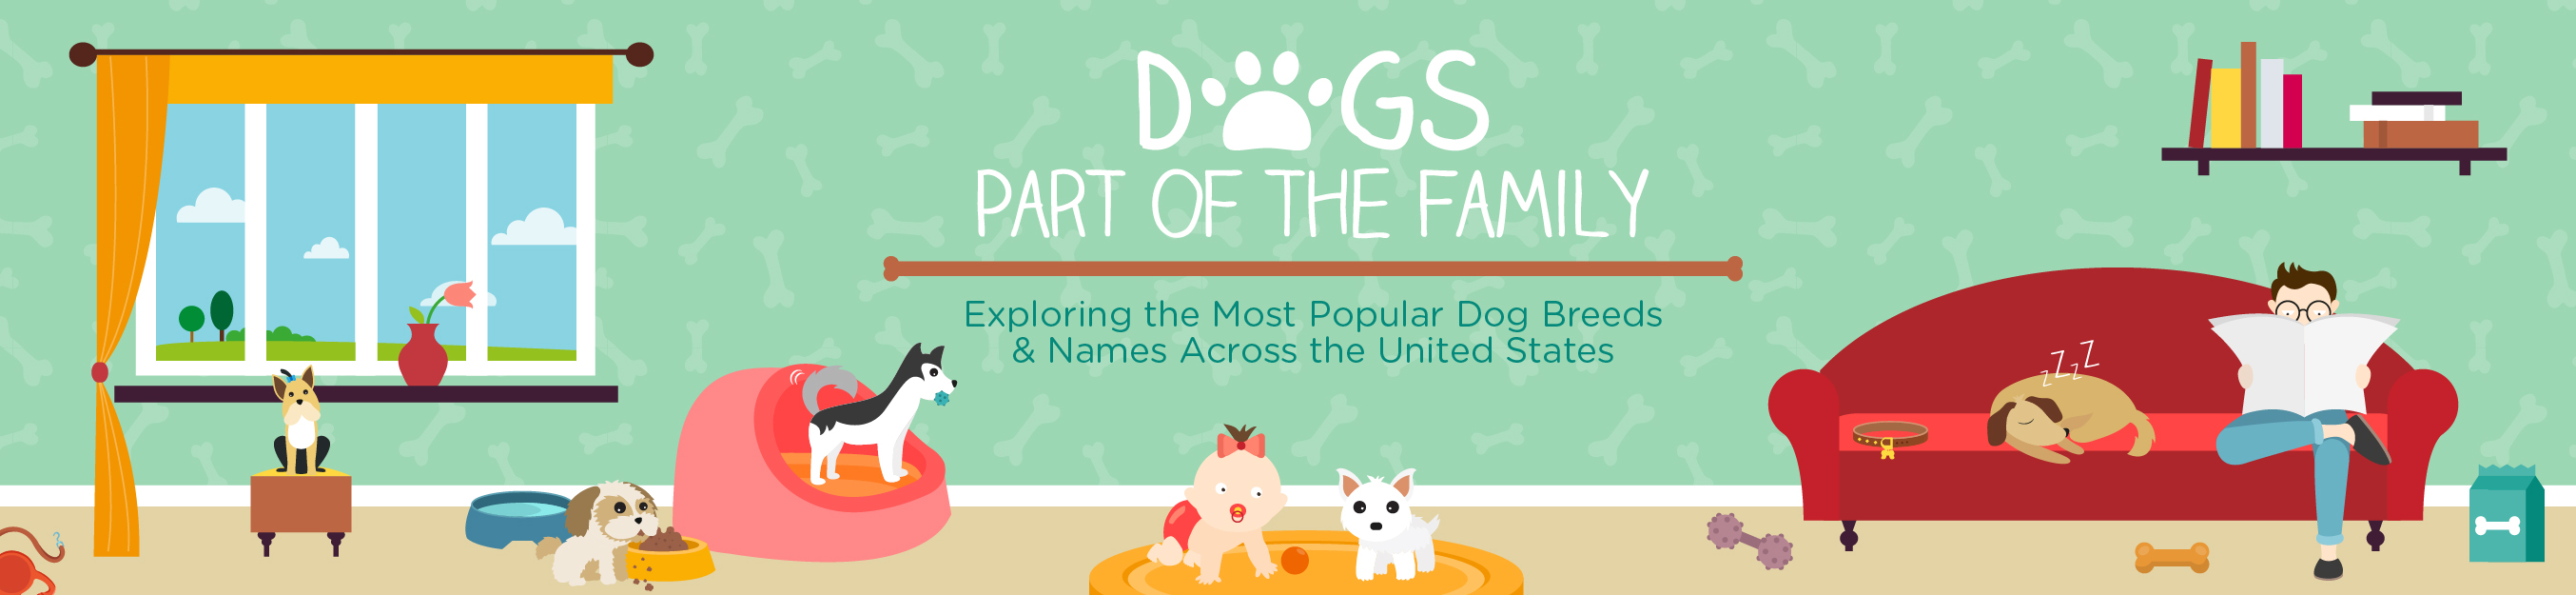 Dogs part of the family